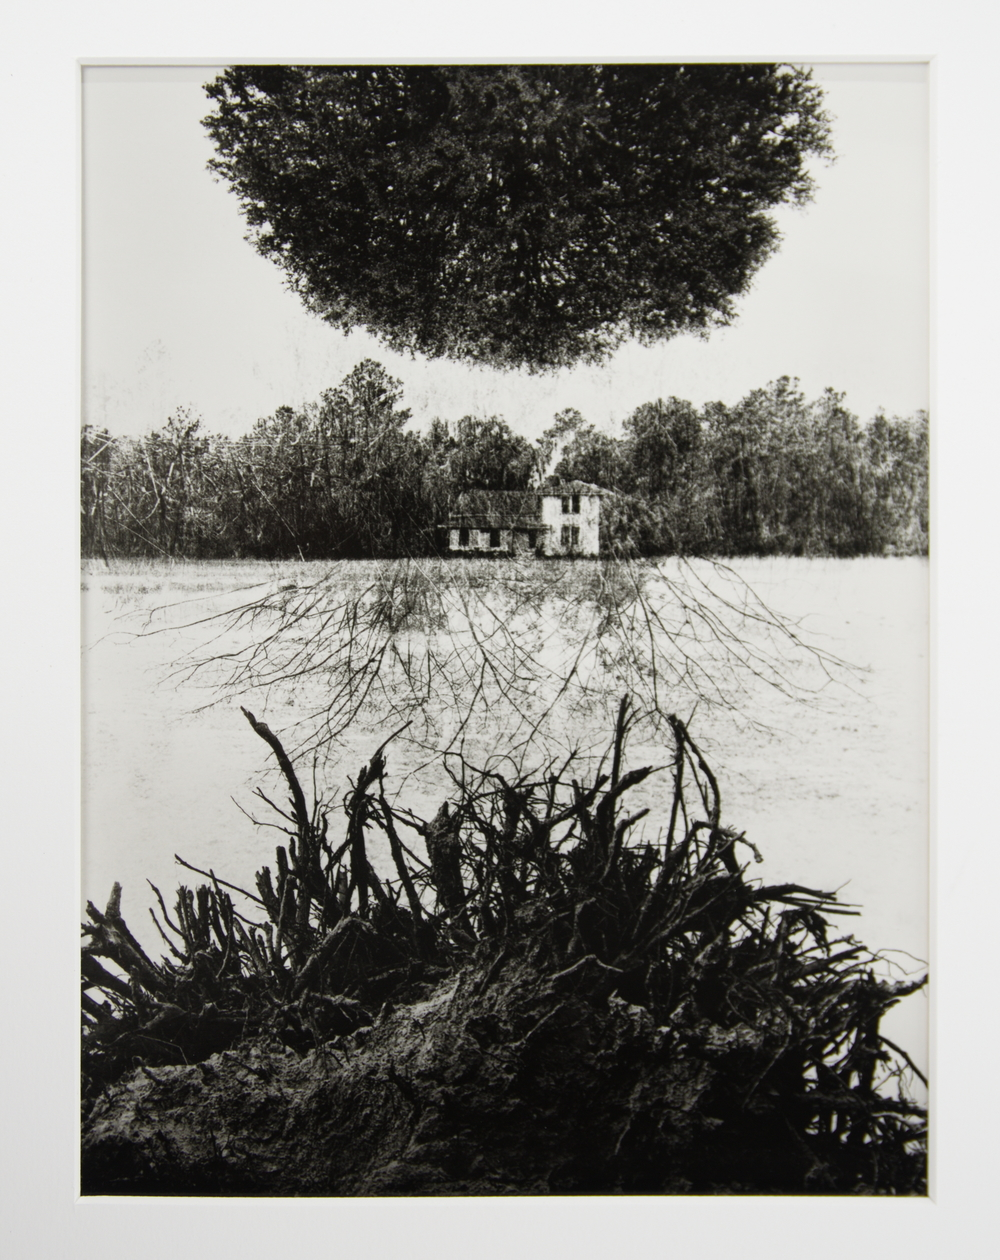 Jerry Uelsmann, Poet's House, 1965, Silver gelatin print (24/100), Gift of the artist, Polk Museum of Art Permanent Collection © Jerry Uelsmann